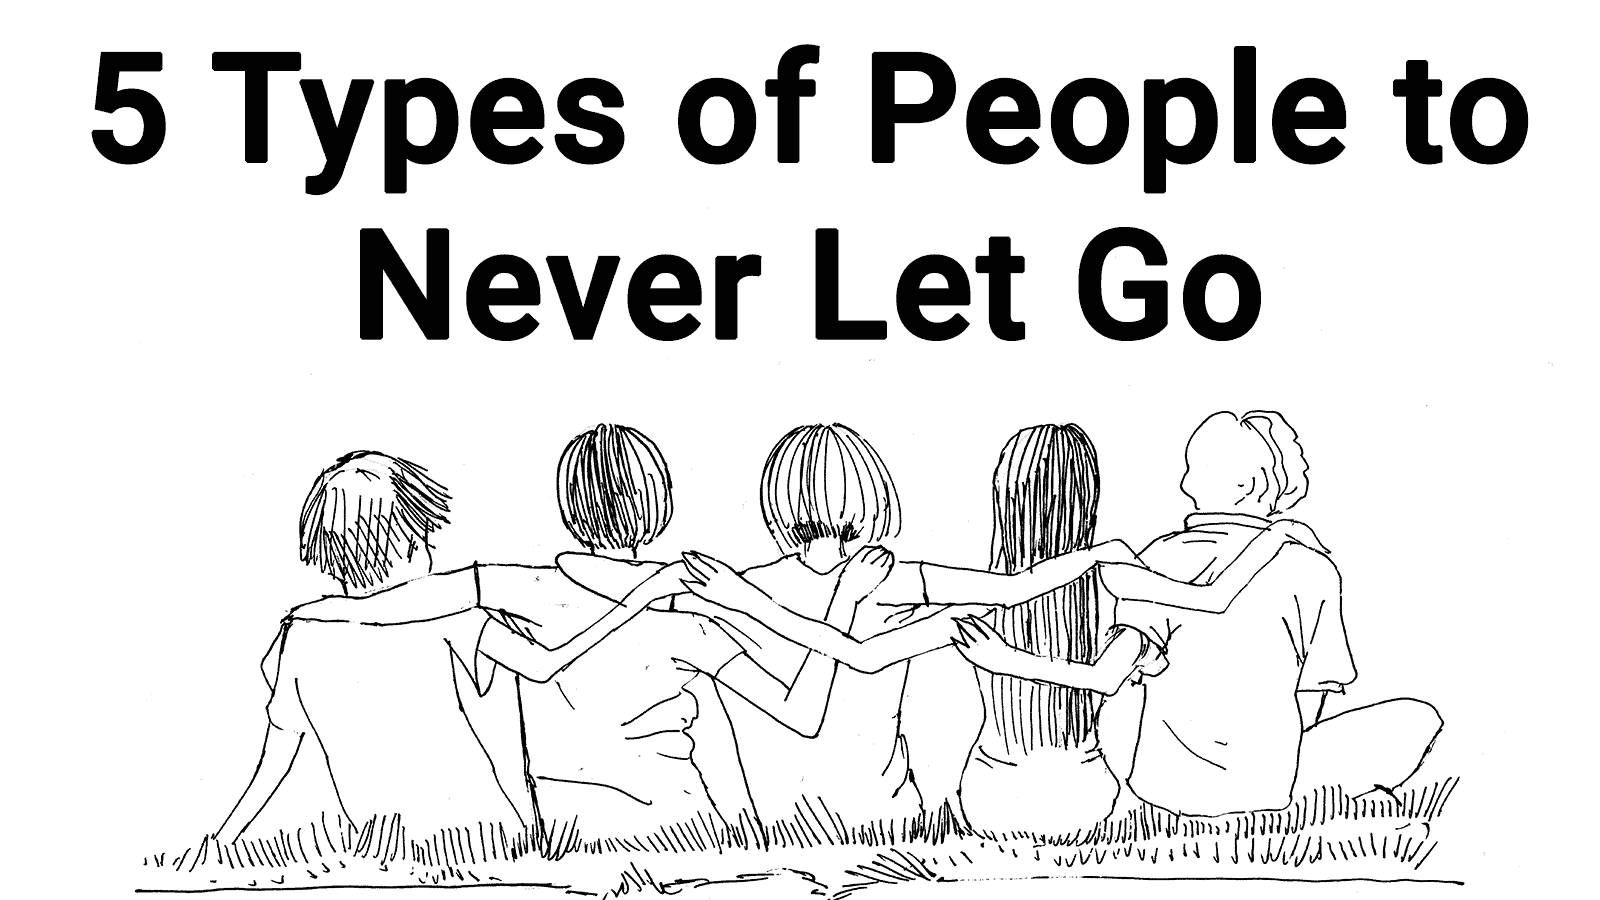 5 types of people to never let go